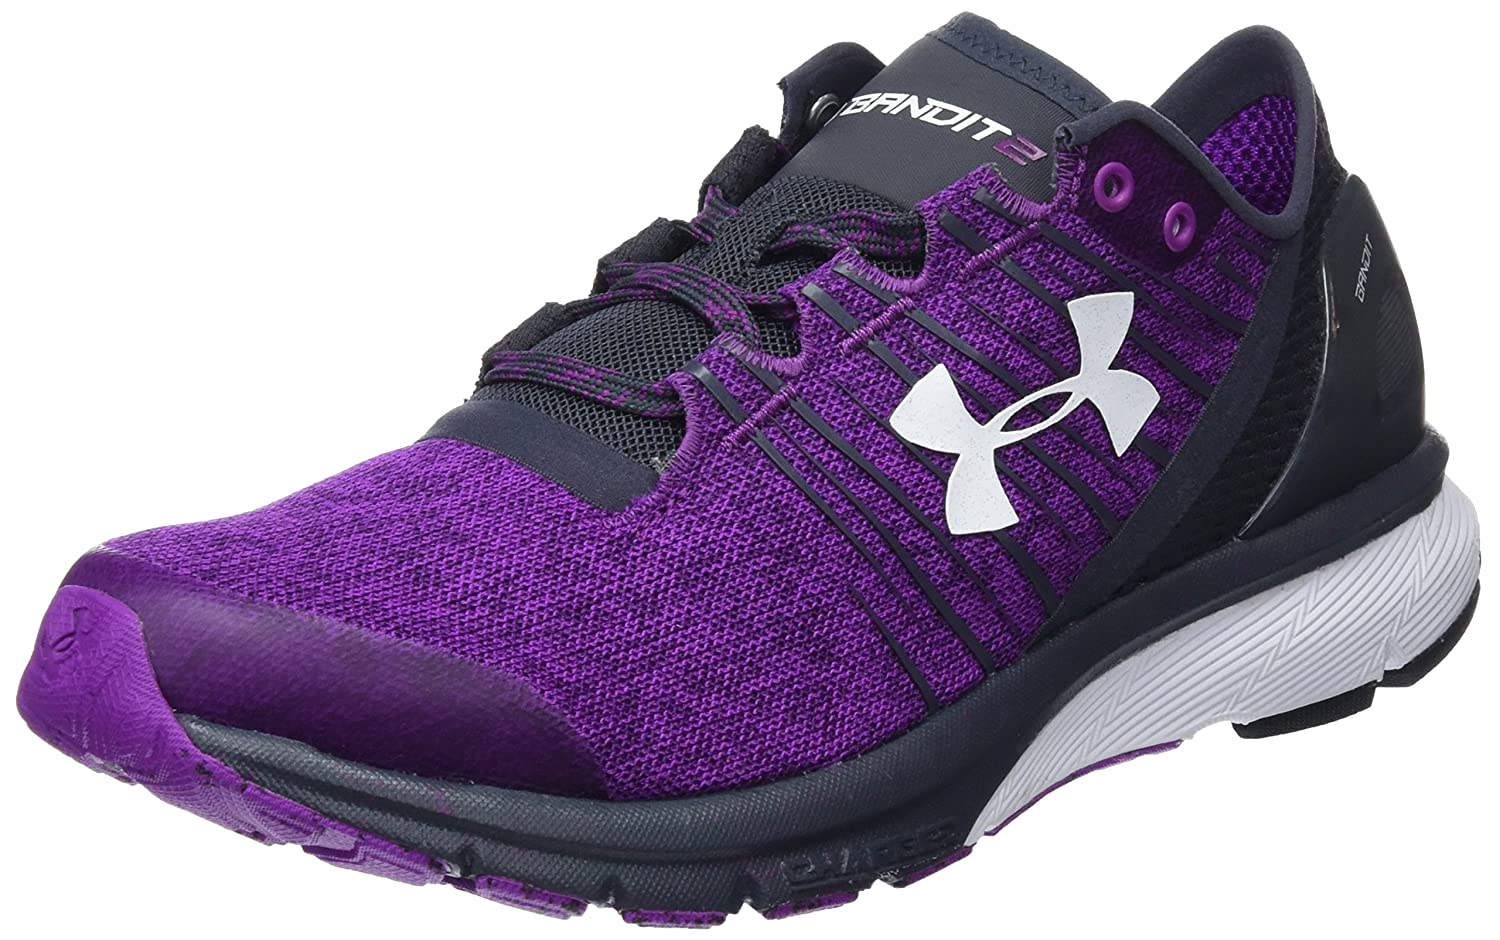 Under Armour Women's Charged Bandit 2 Cross-Country Running Shoe B01I0KZWFY 6.5 B(M) US|Purple/Stealth Grey